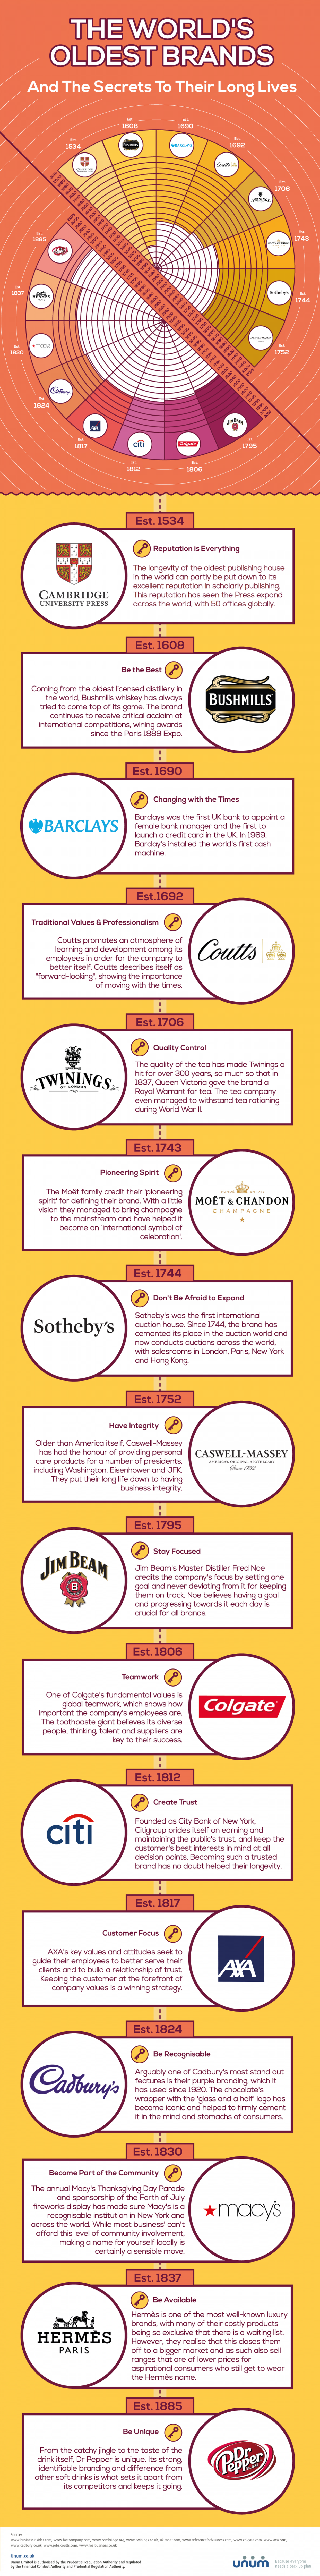 The World's Oldest Brands Infographic